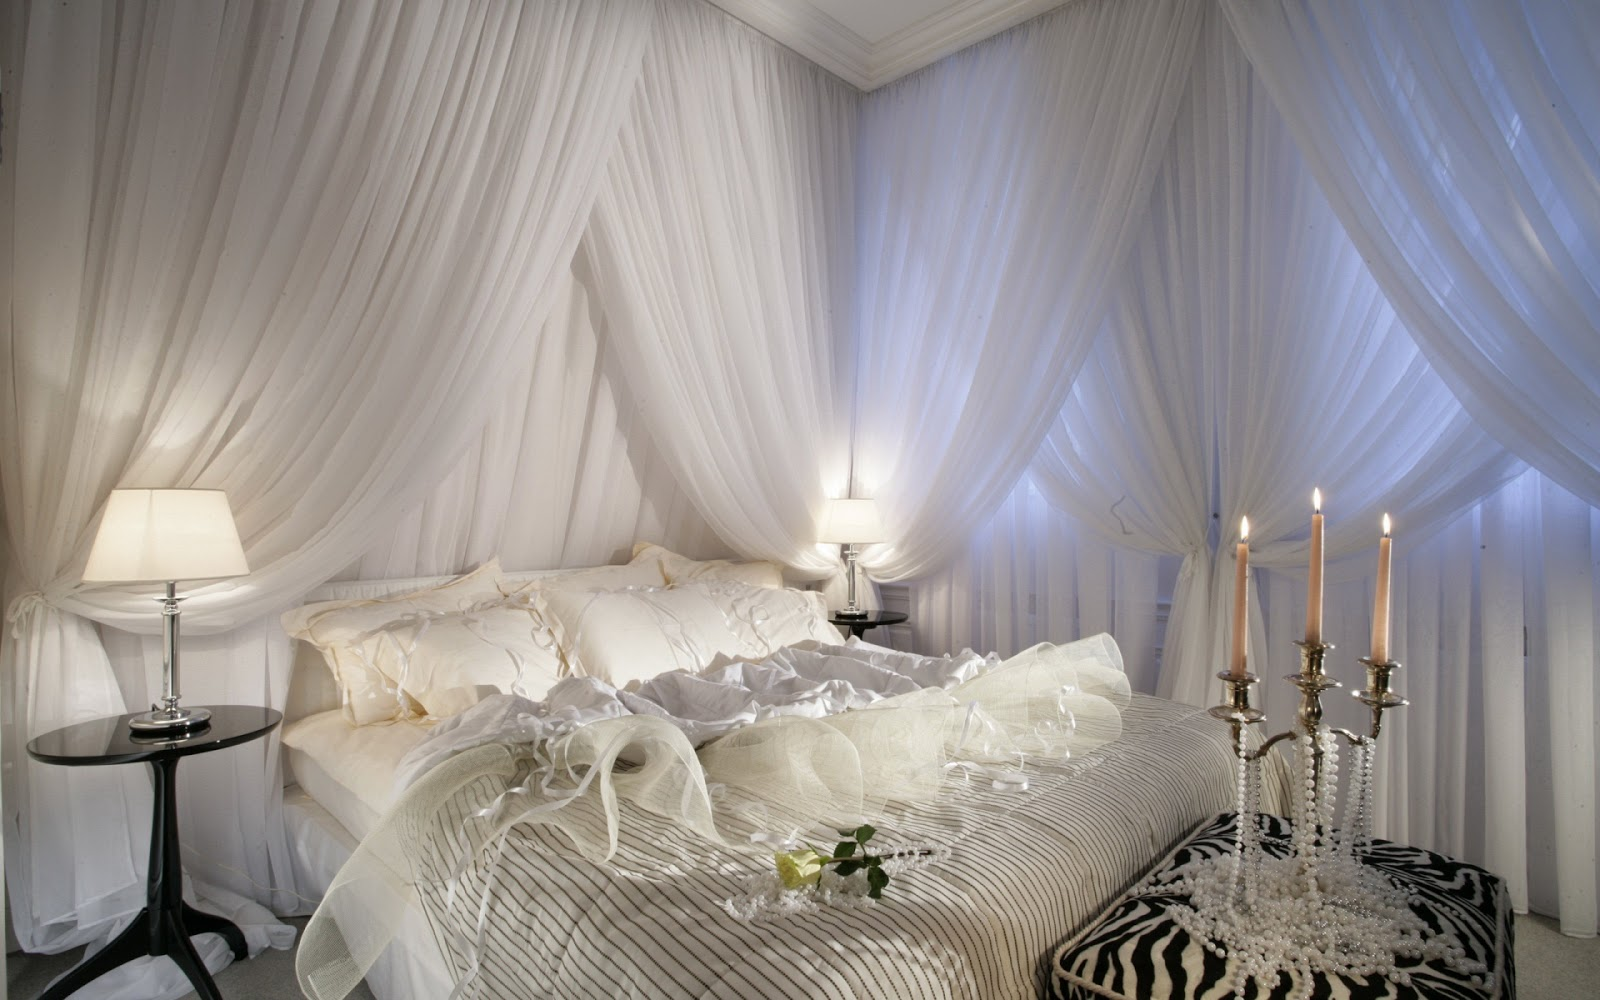 Candle Bedroom Decorating Ideas Ask Home Design